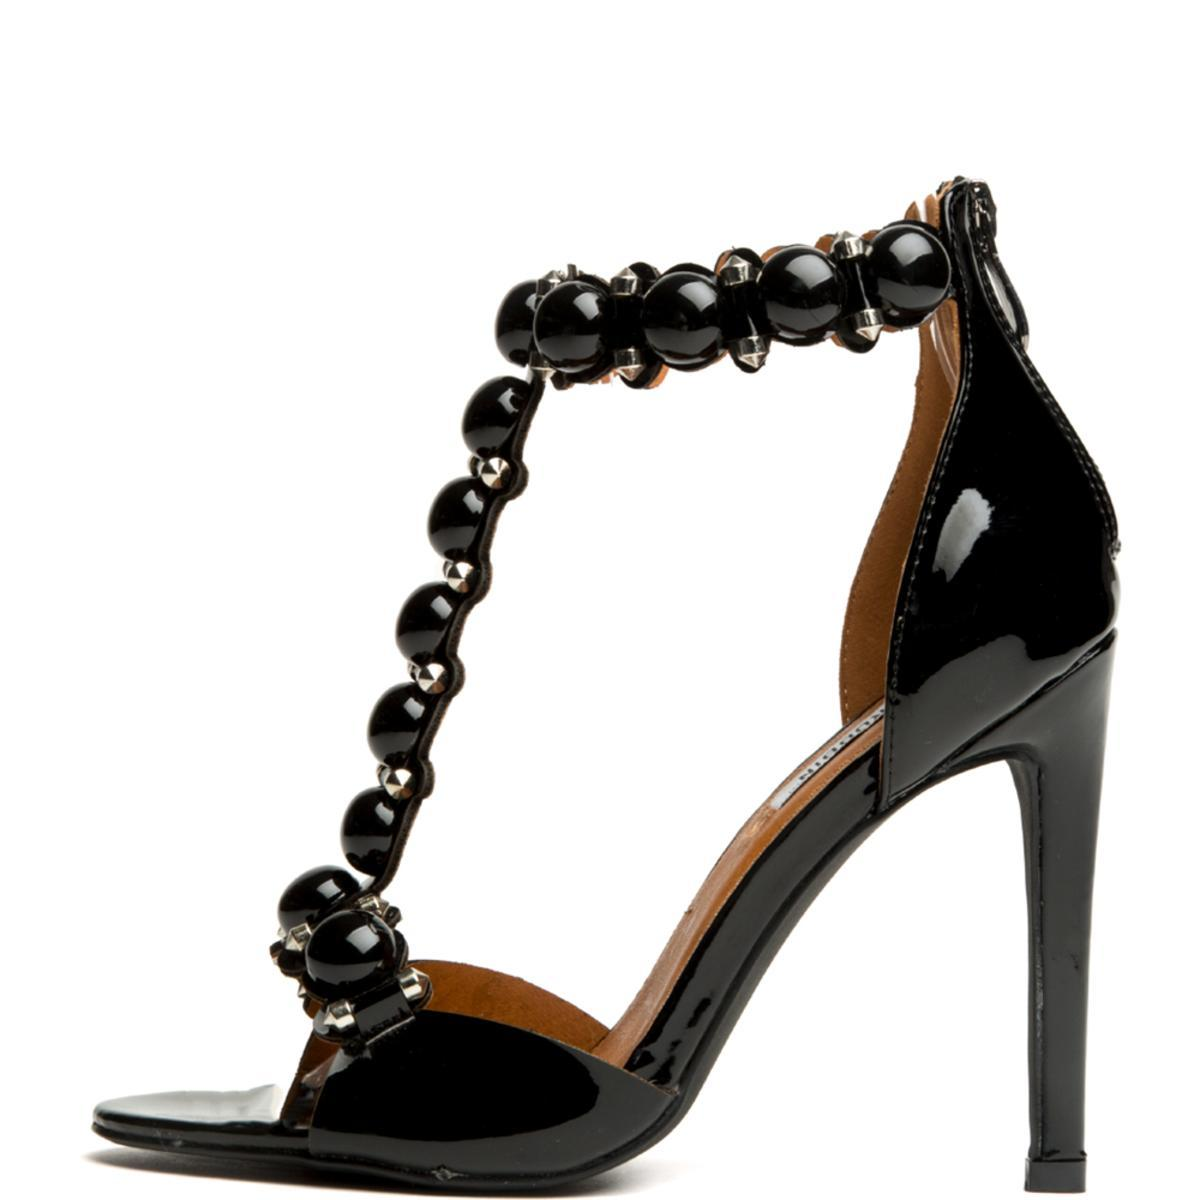 Cape Robbin Alza-40 Black Women's High Heel